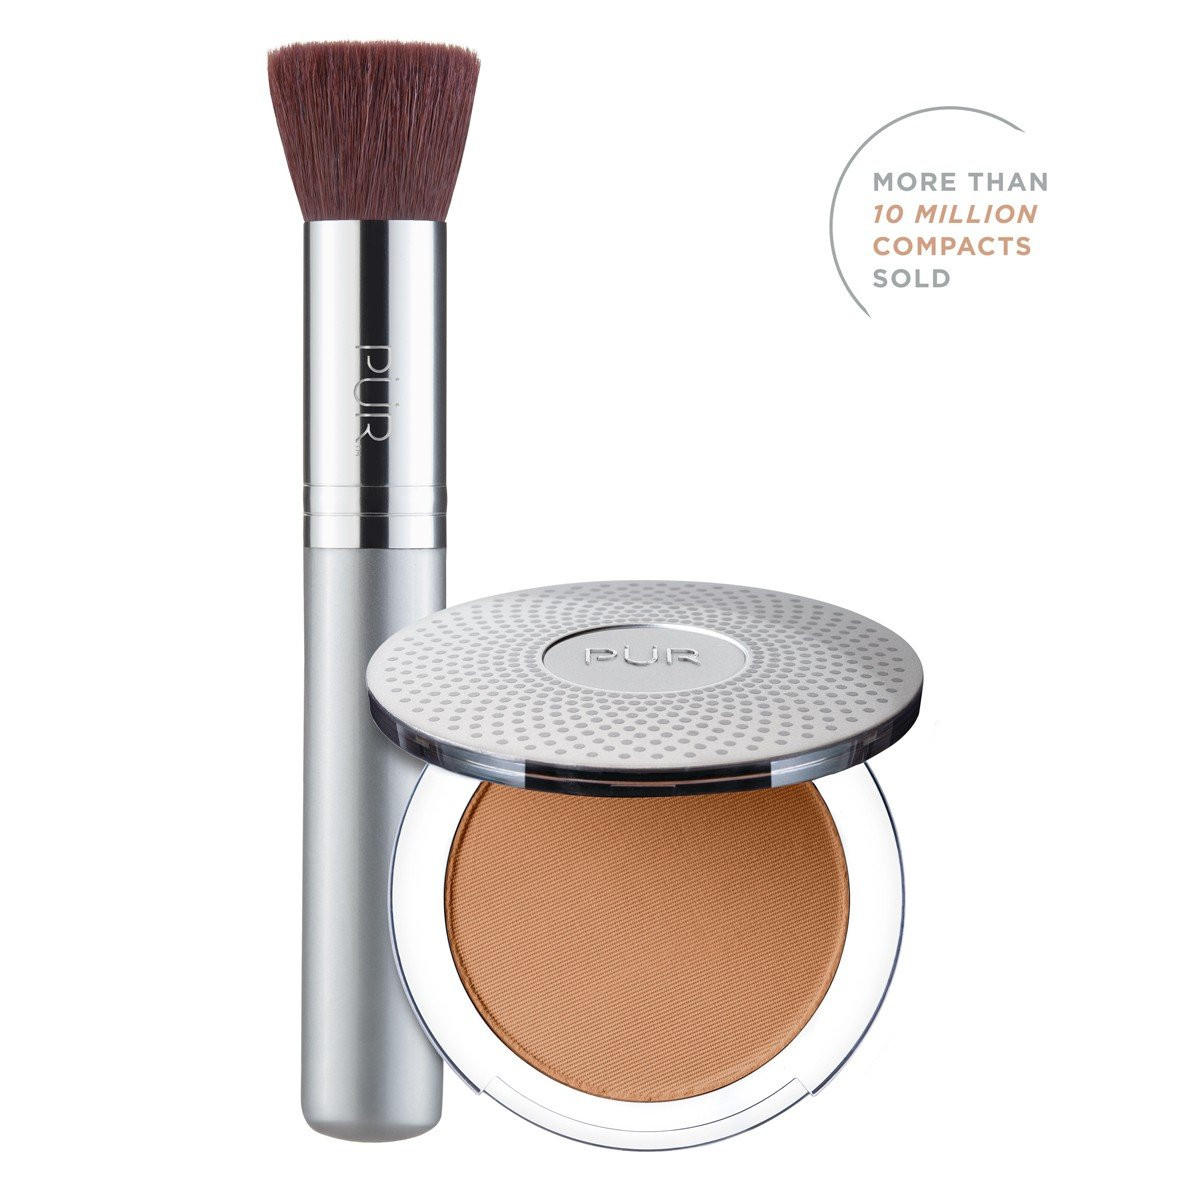 TRY PÜR! 4-in-1 Pressed Mineral Makeup and Brush Kit in Deep